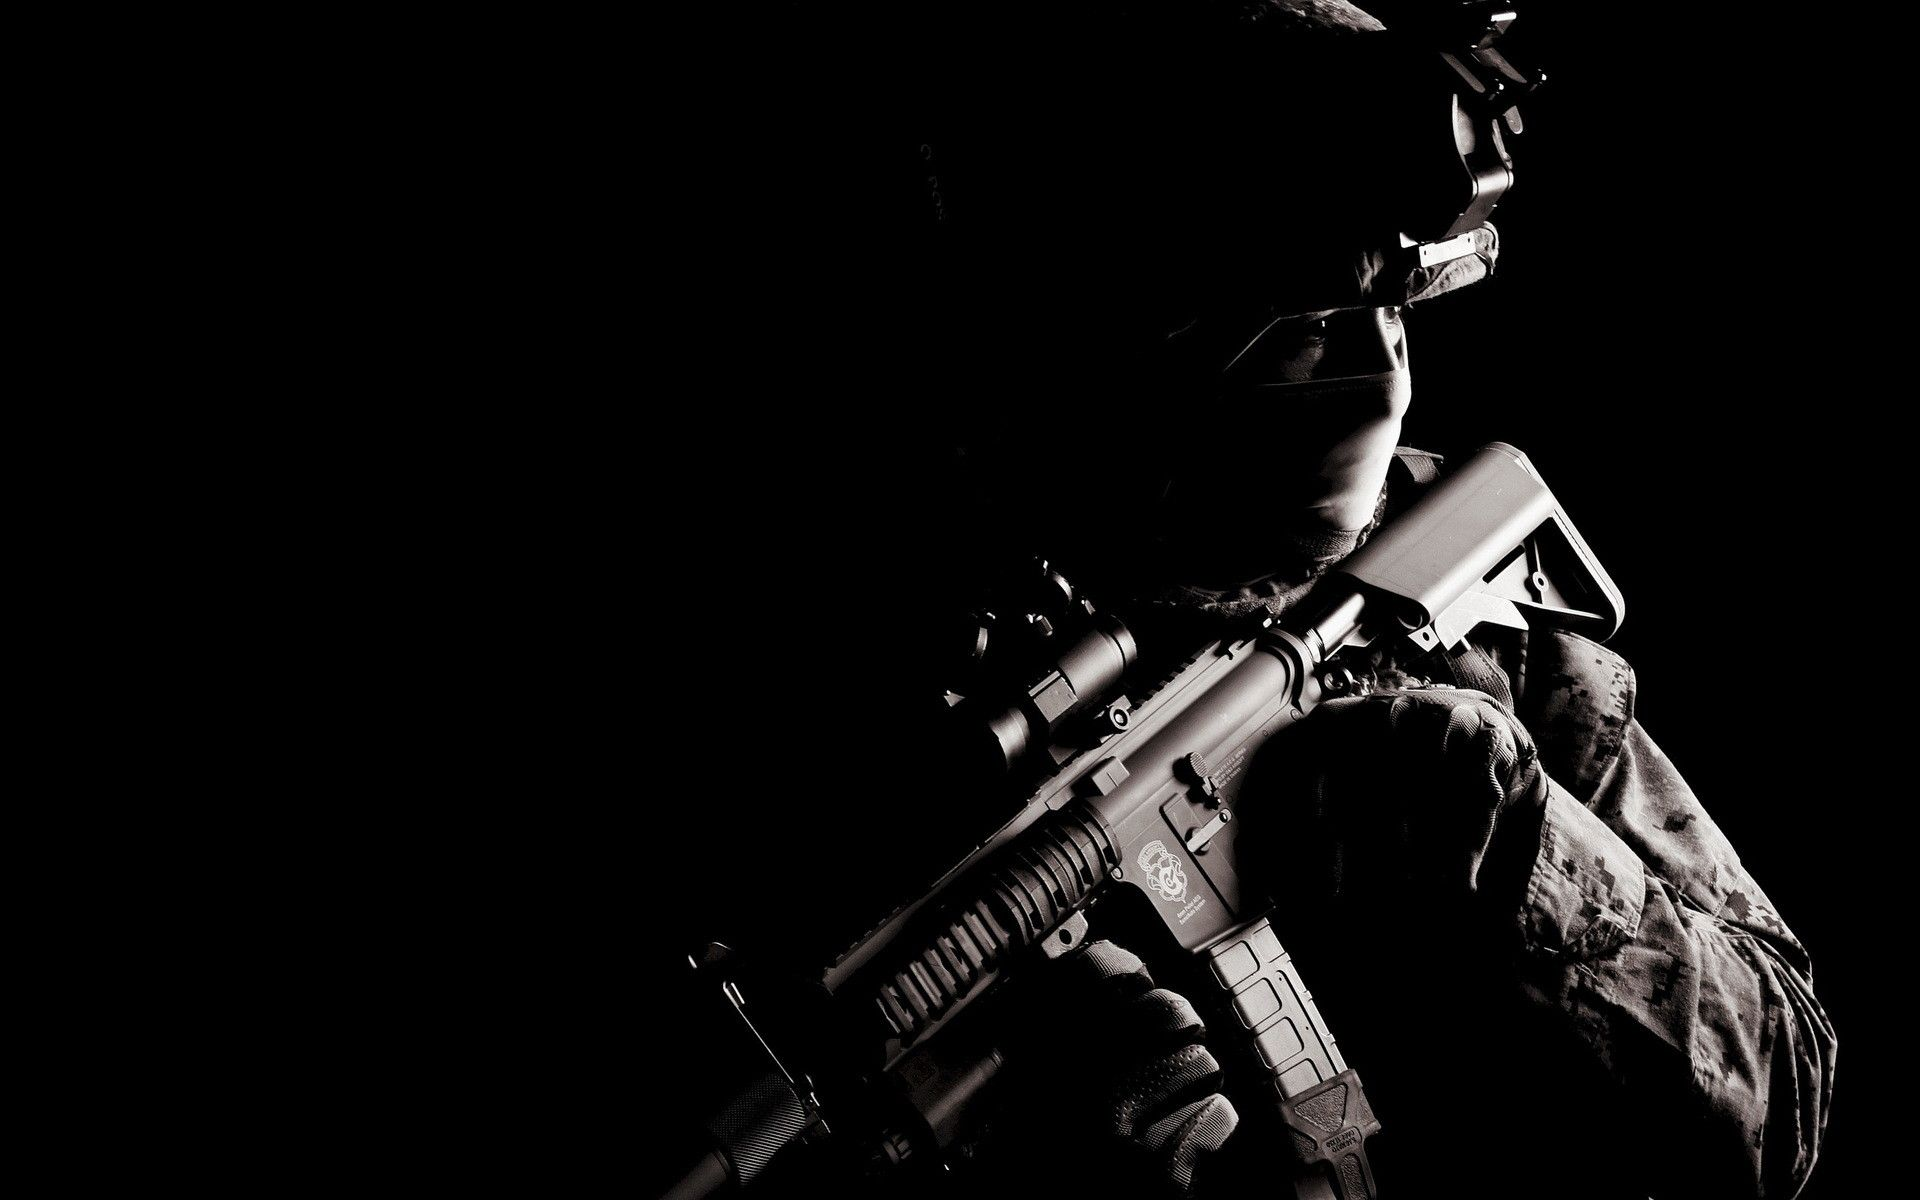 Sniper Wallpaper Picture For Your Laptop Wallpaper Not Just Sniper Wallpaper Picture Sniper Wallpaper Mobile Sniper Navy Seal Wallpaper Navy Seals Soldier